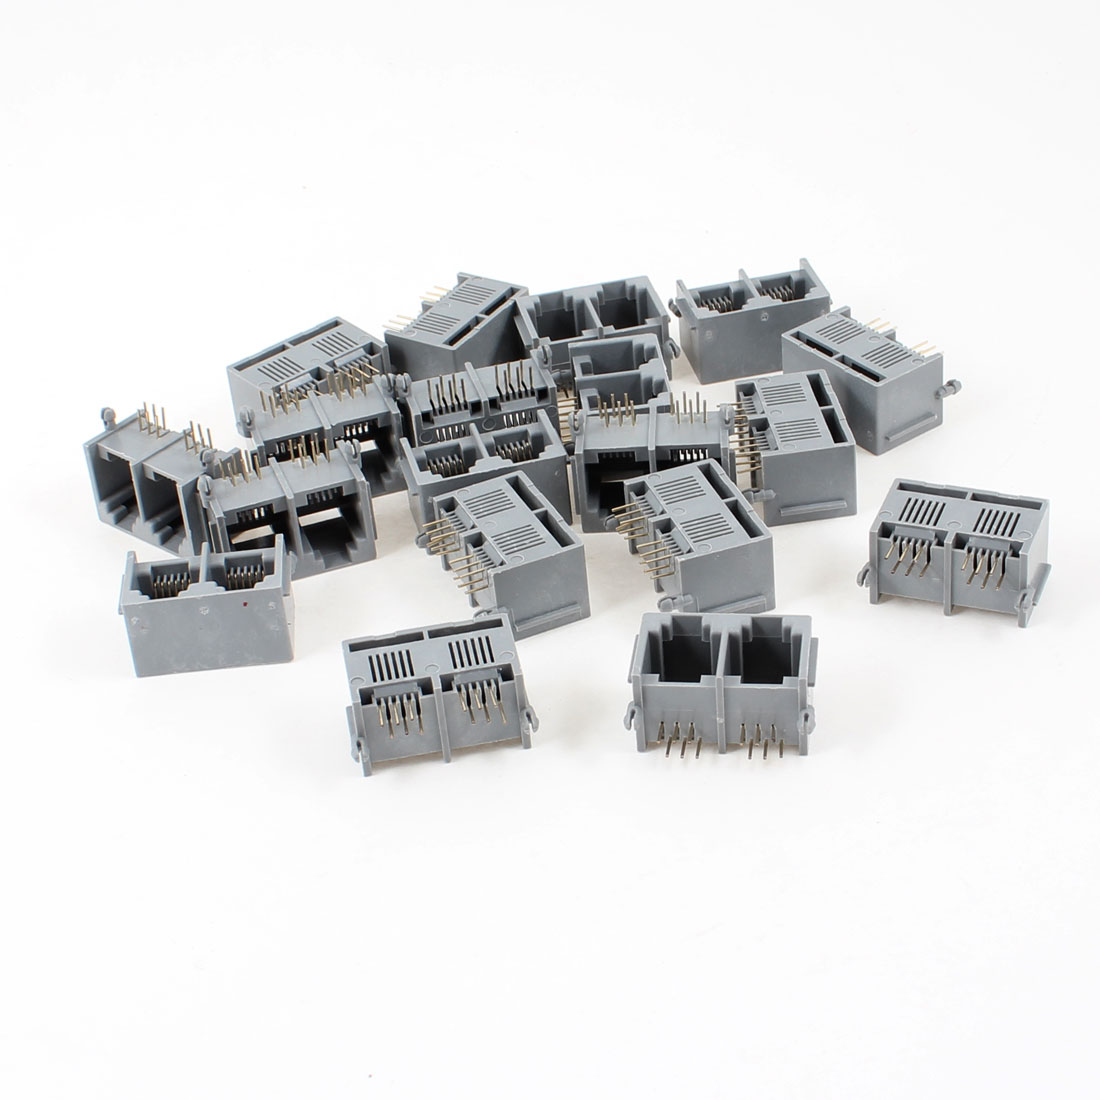 19 Pcs Gray Unshielded Dual Ports RJ12 6P6C Network Modular PCB Jacks Connector